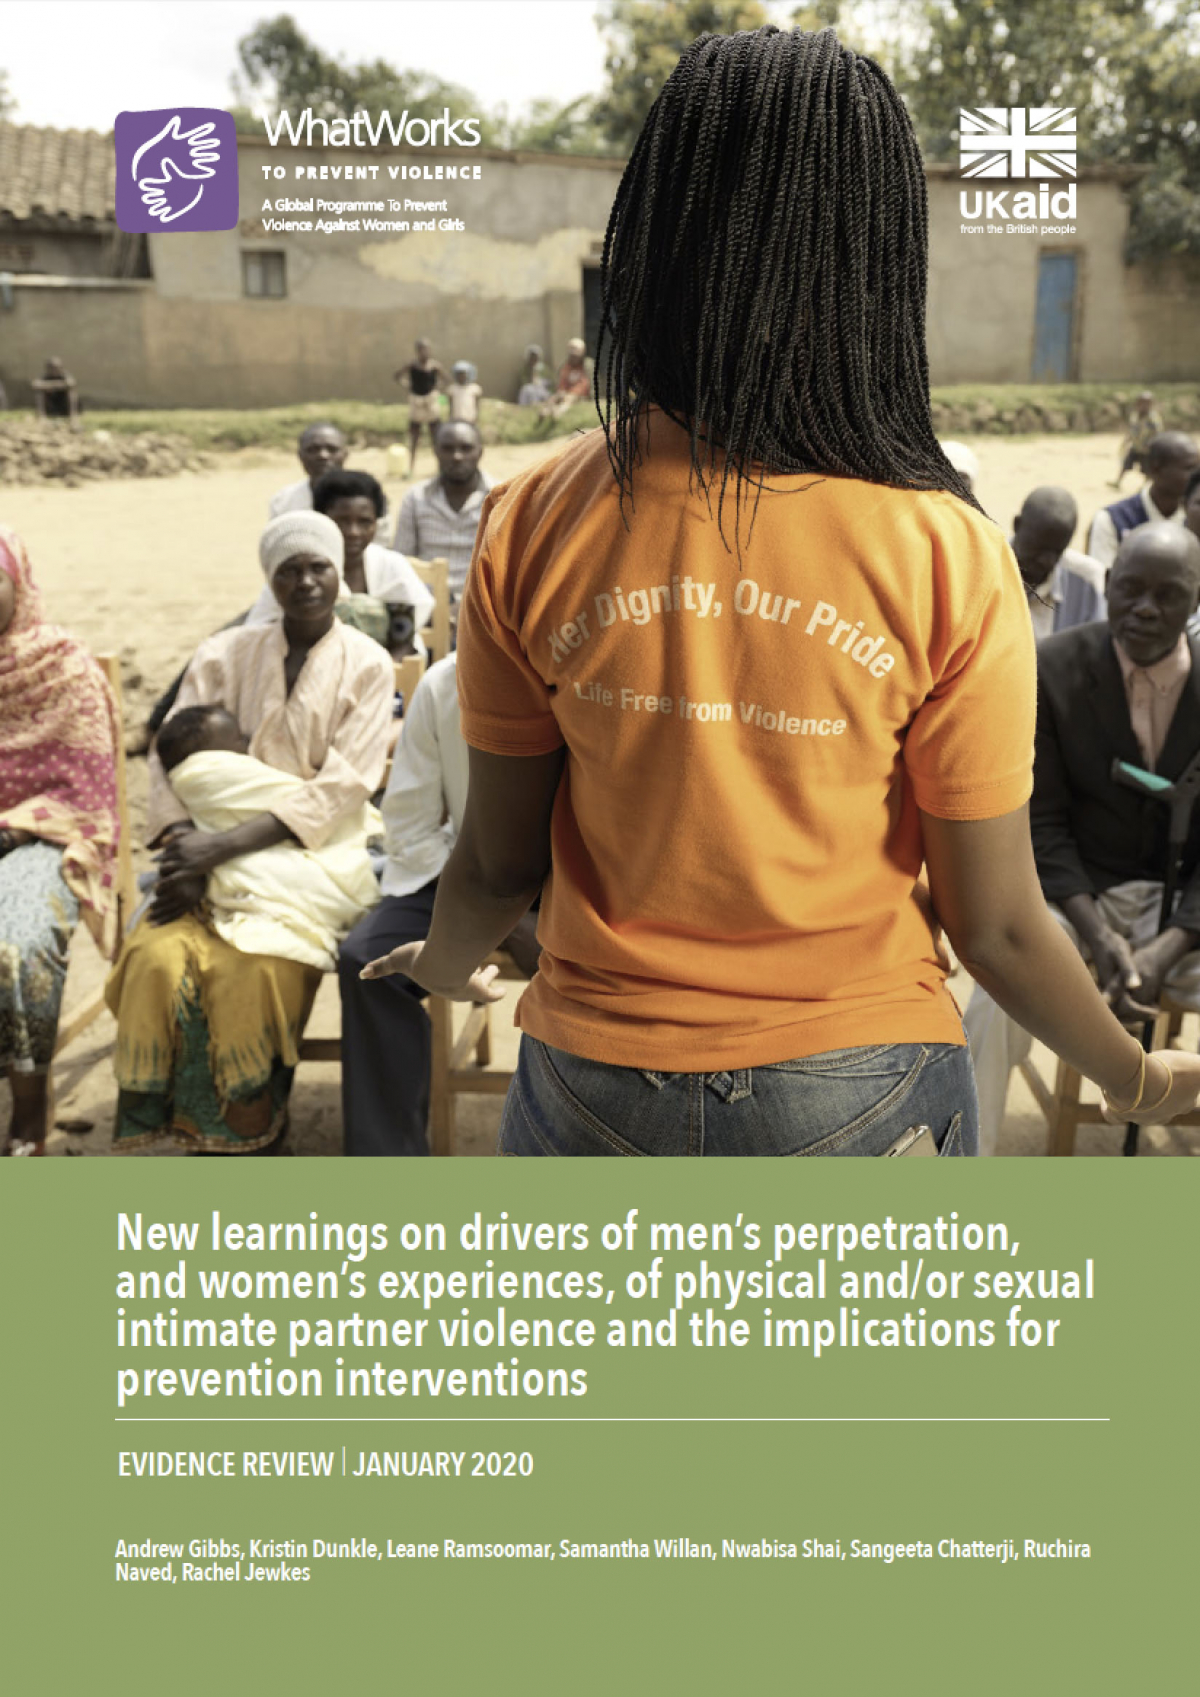 New learnings on drivers of men's perpetration, and women's experiences, of physical and/or sexual intimate partner violence and the implications for prevention interventions